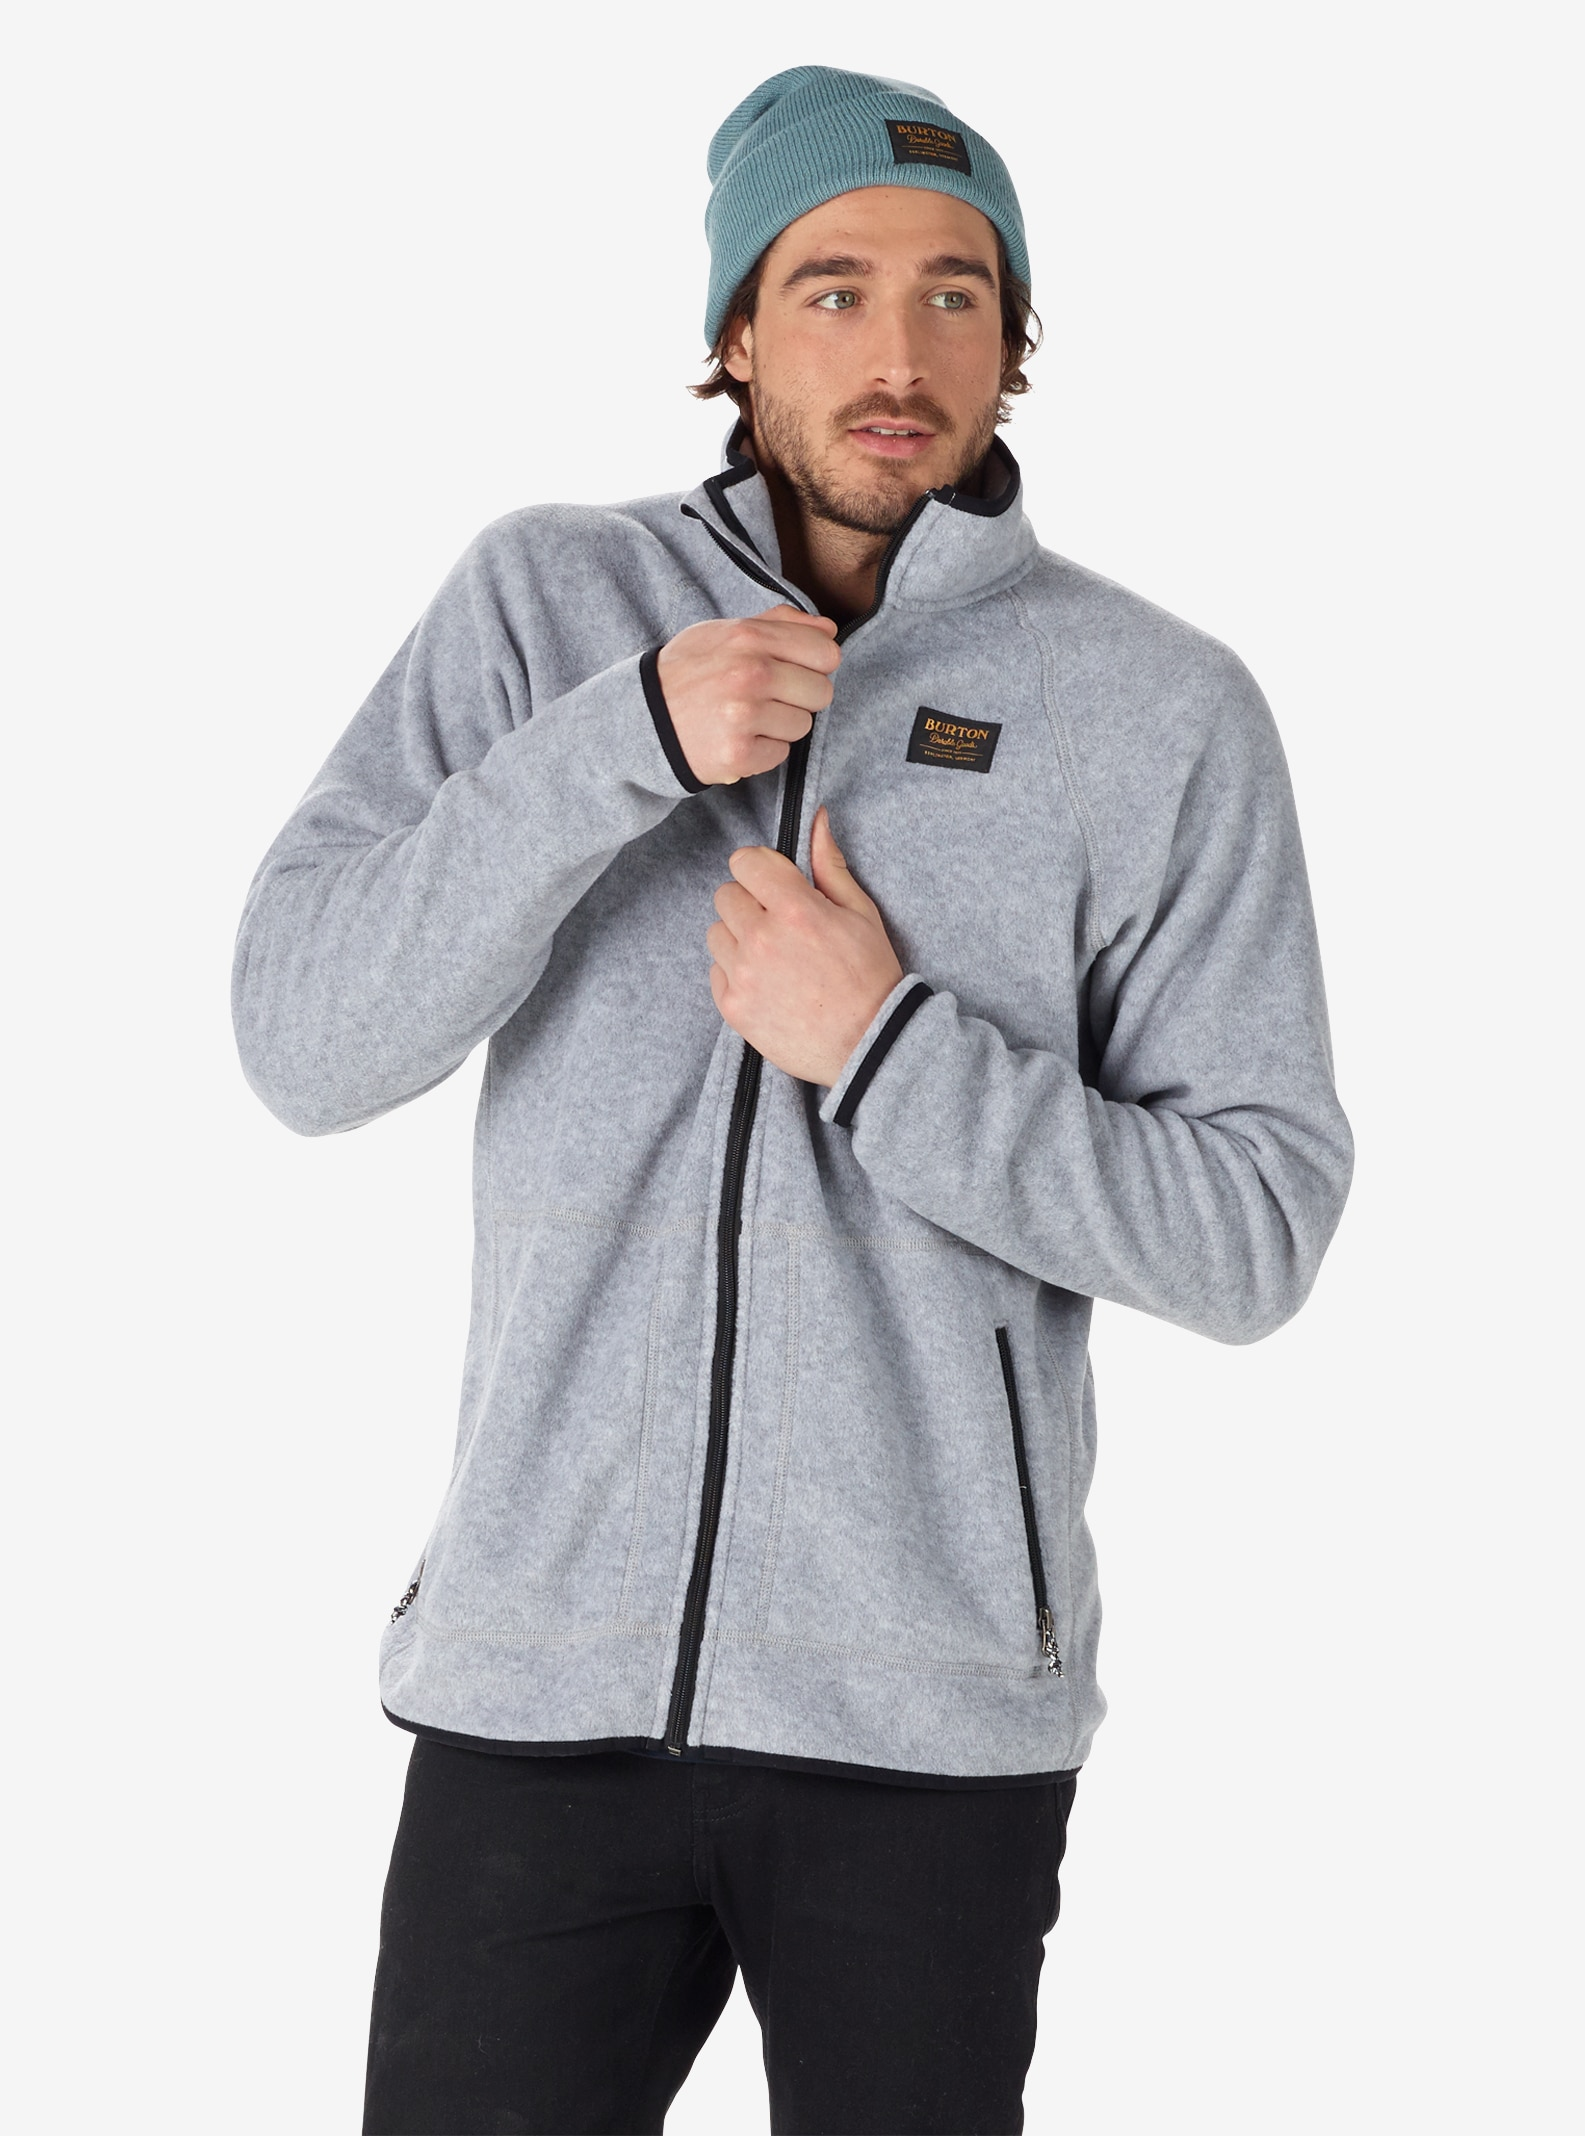 Men's Burton Ember Full-Zip Fleece shown in Shade Heather